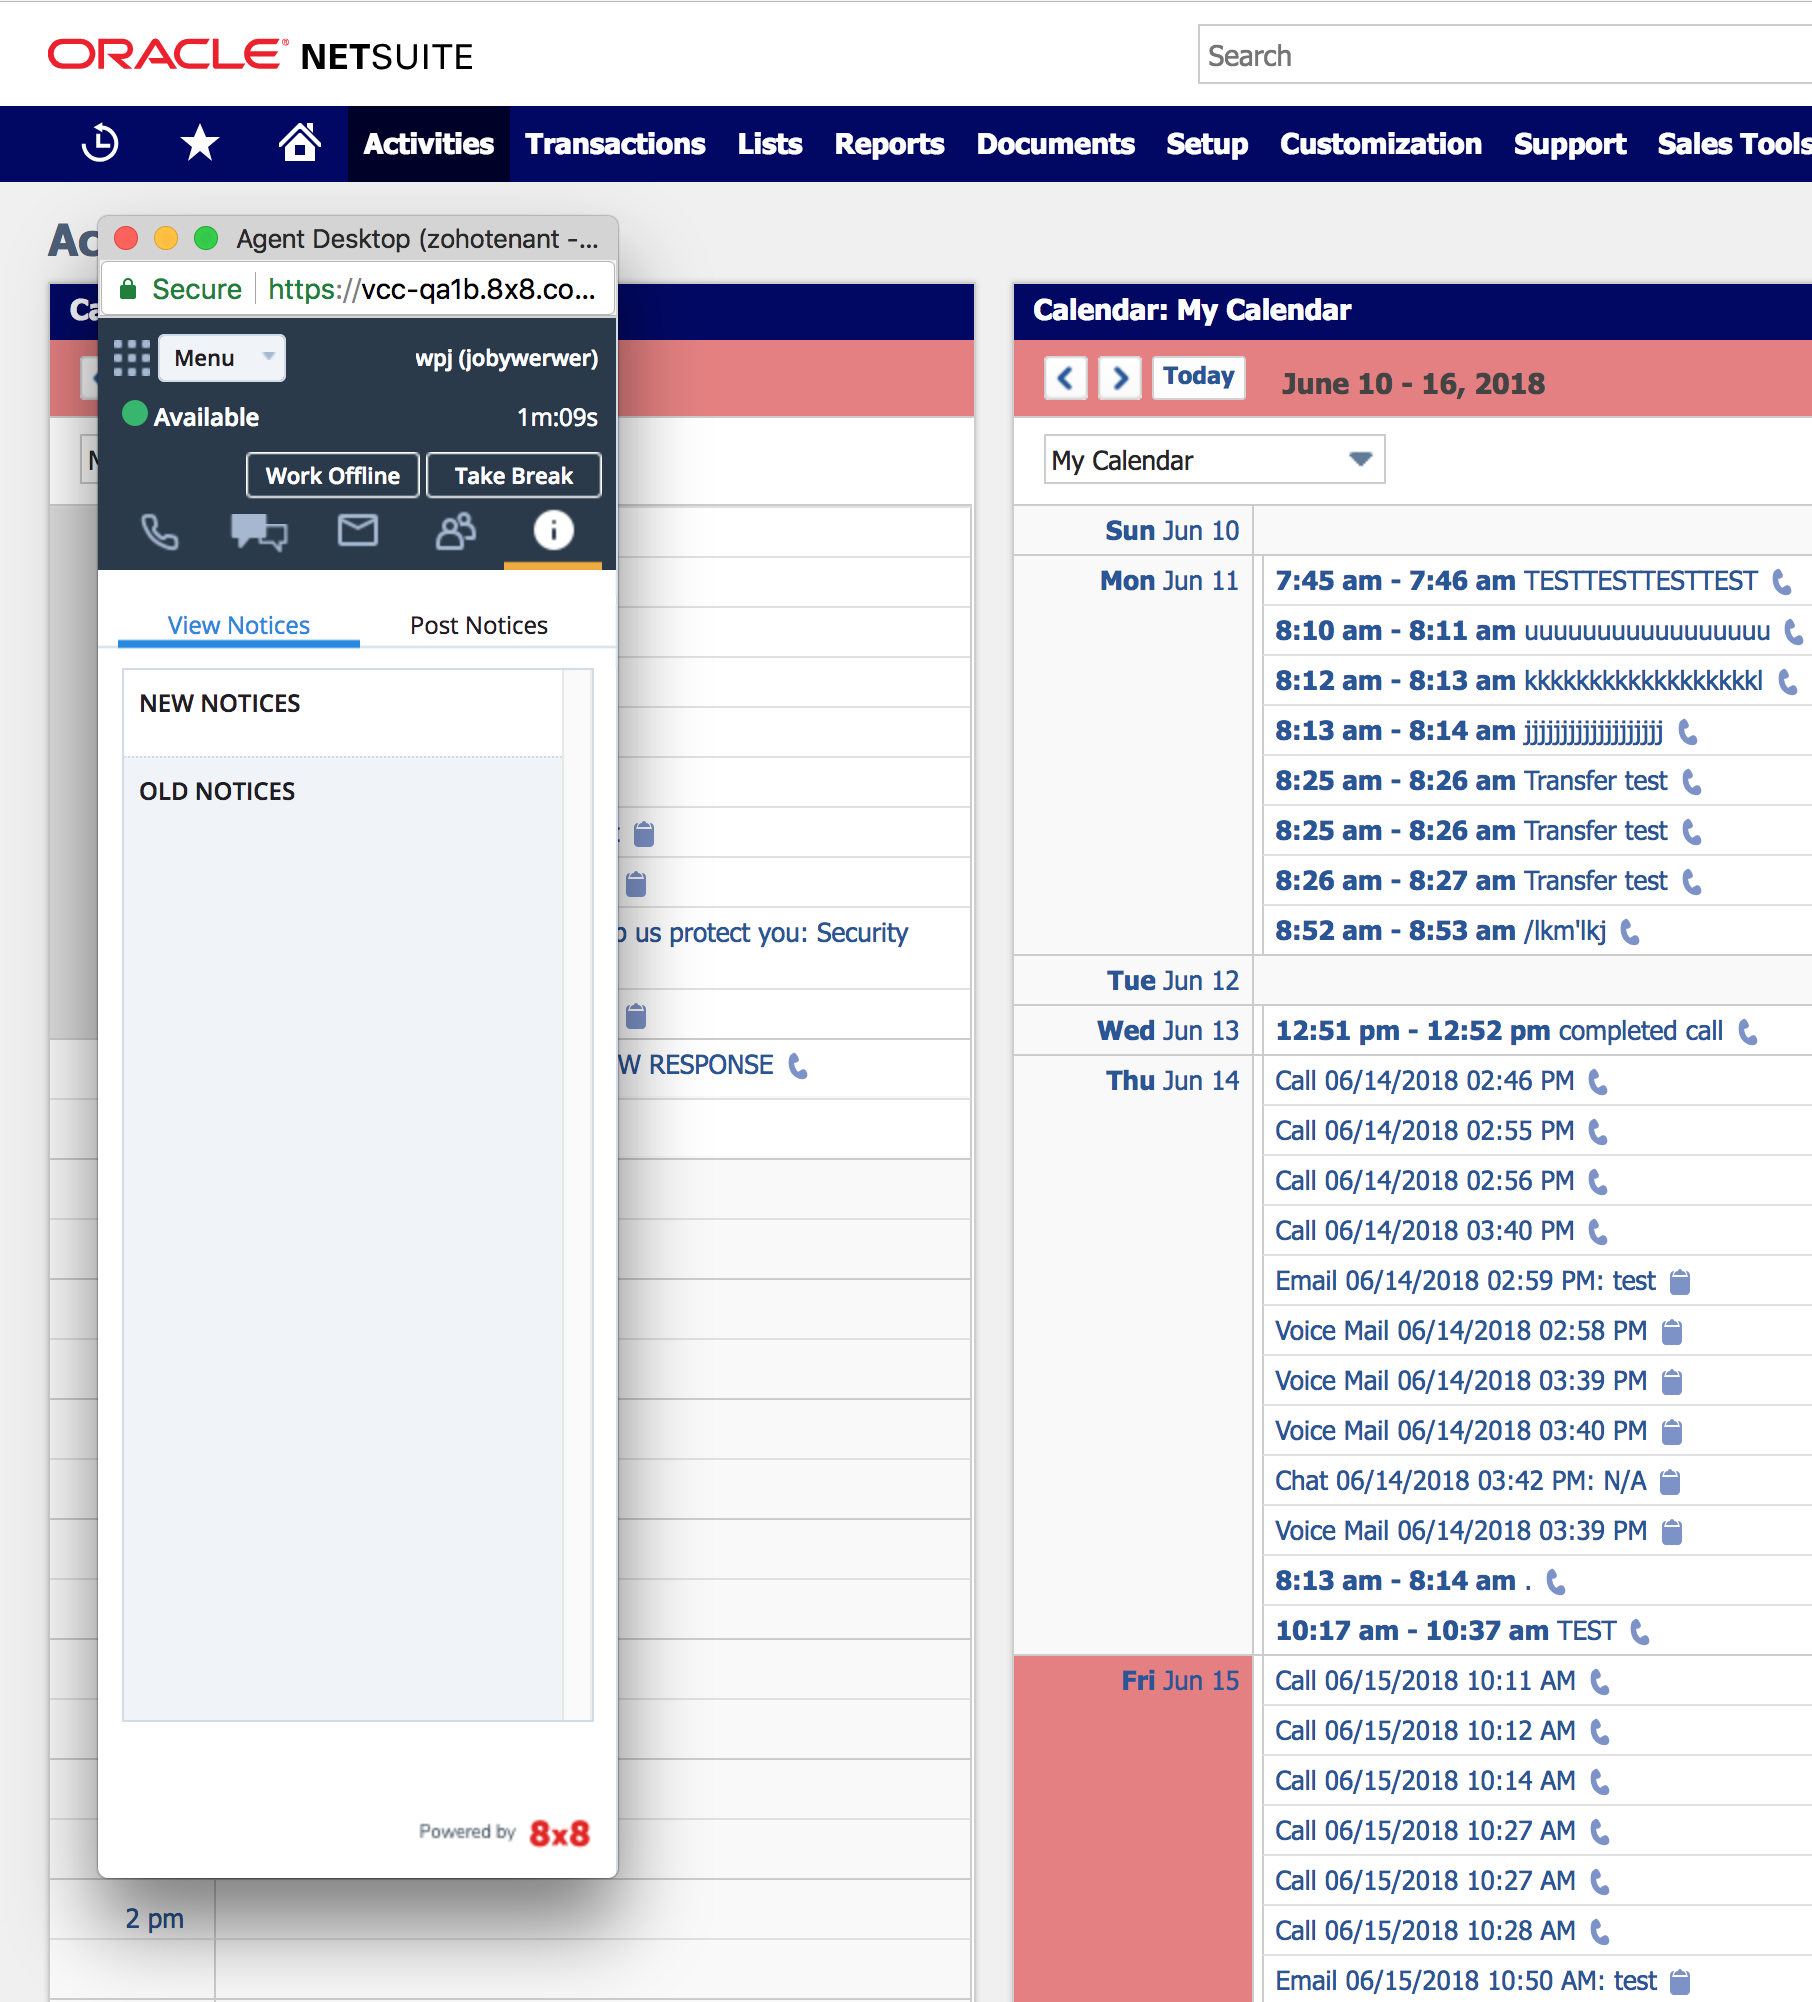 Netsuite Integration with 8x8 Virtual Contact Center.